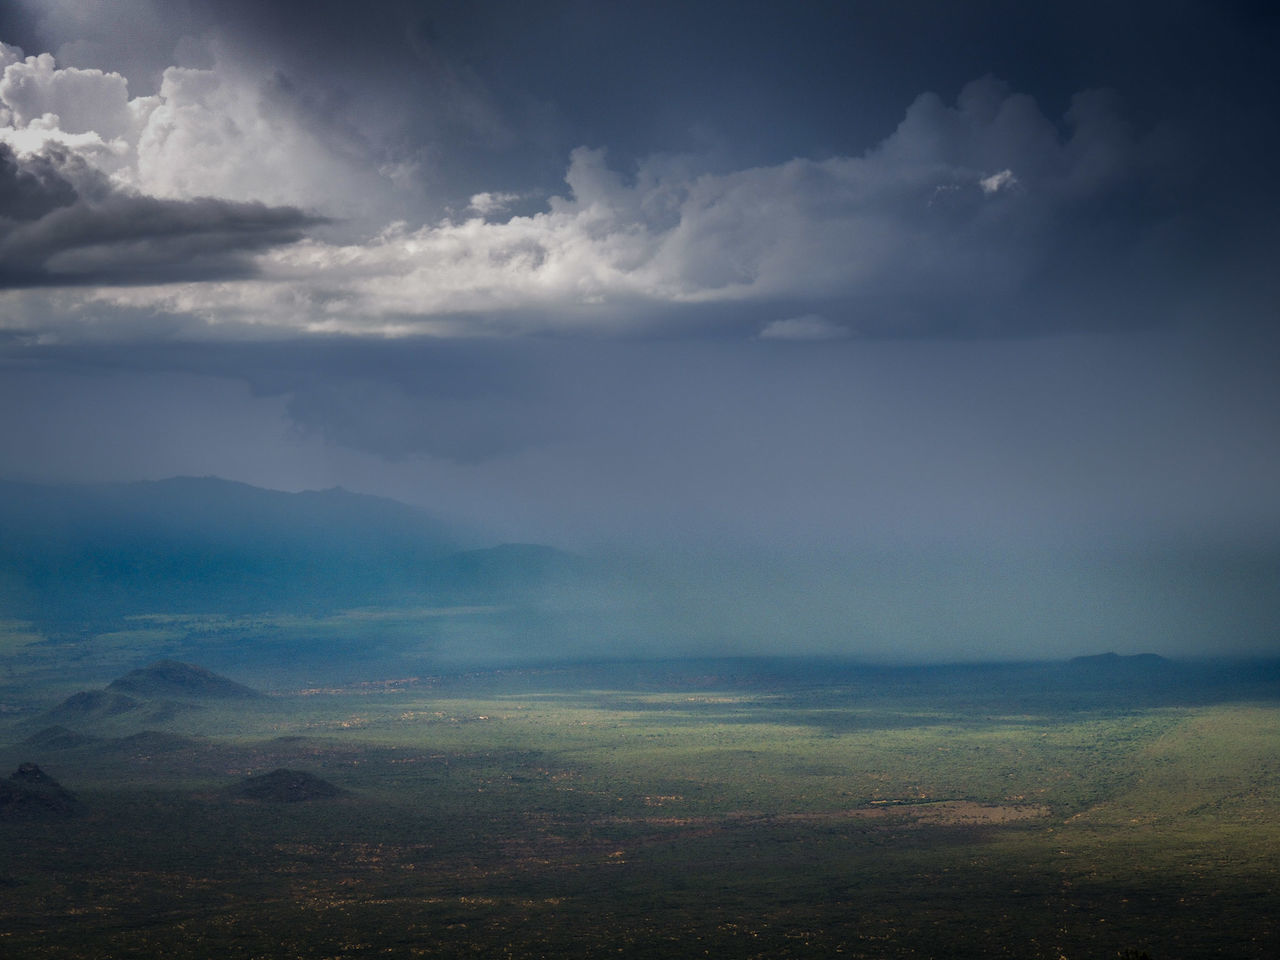 Beauty In Nature Cloud - Sky Day Idyllic Landscape Landscapes Lesotho Mountain Nature Nature Nature_collection Naturelovers No People Outdoor Outdoor Photography Outdoors Outside Scenics Sky Sky And Clouds Tranquil Scene Tranquility Usambara UsambaraMountains Weather